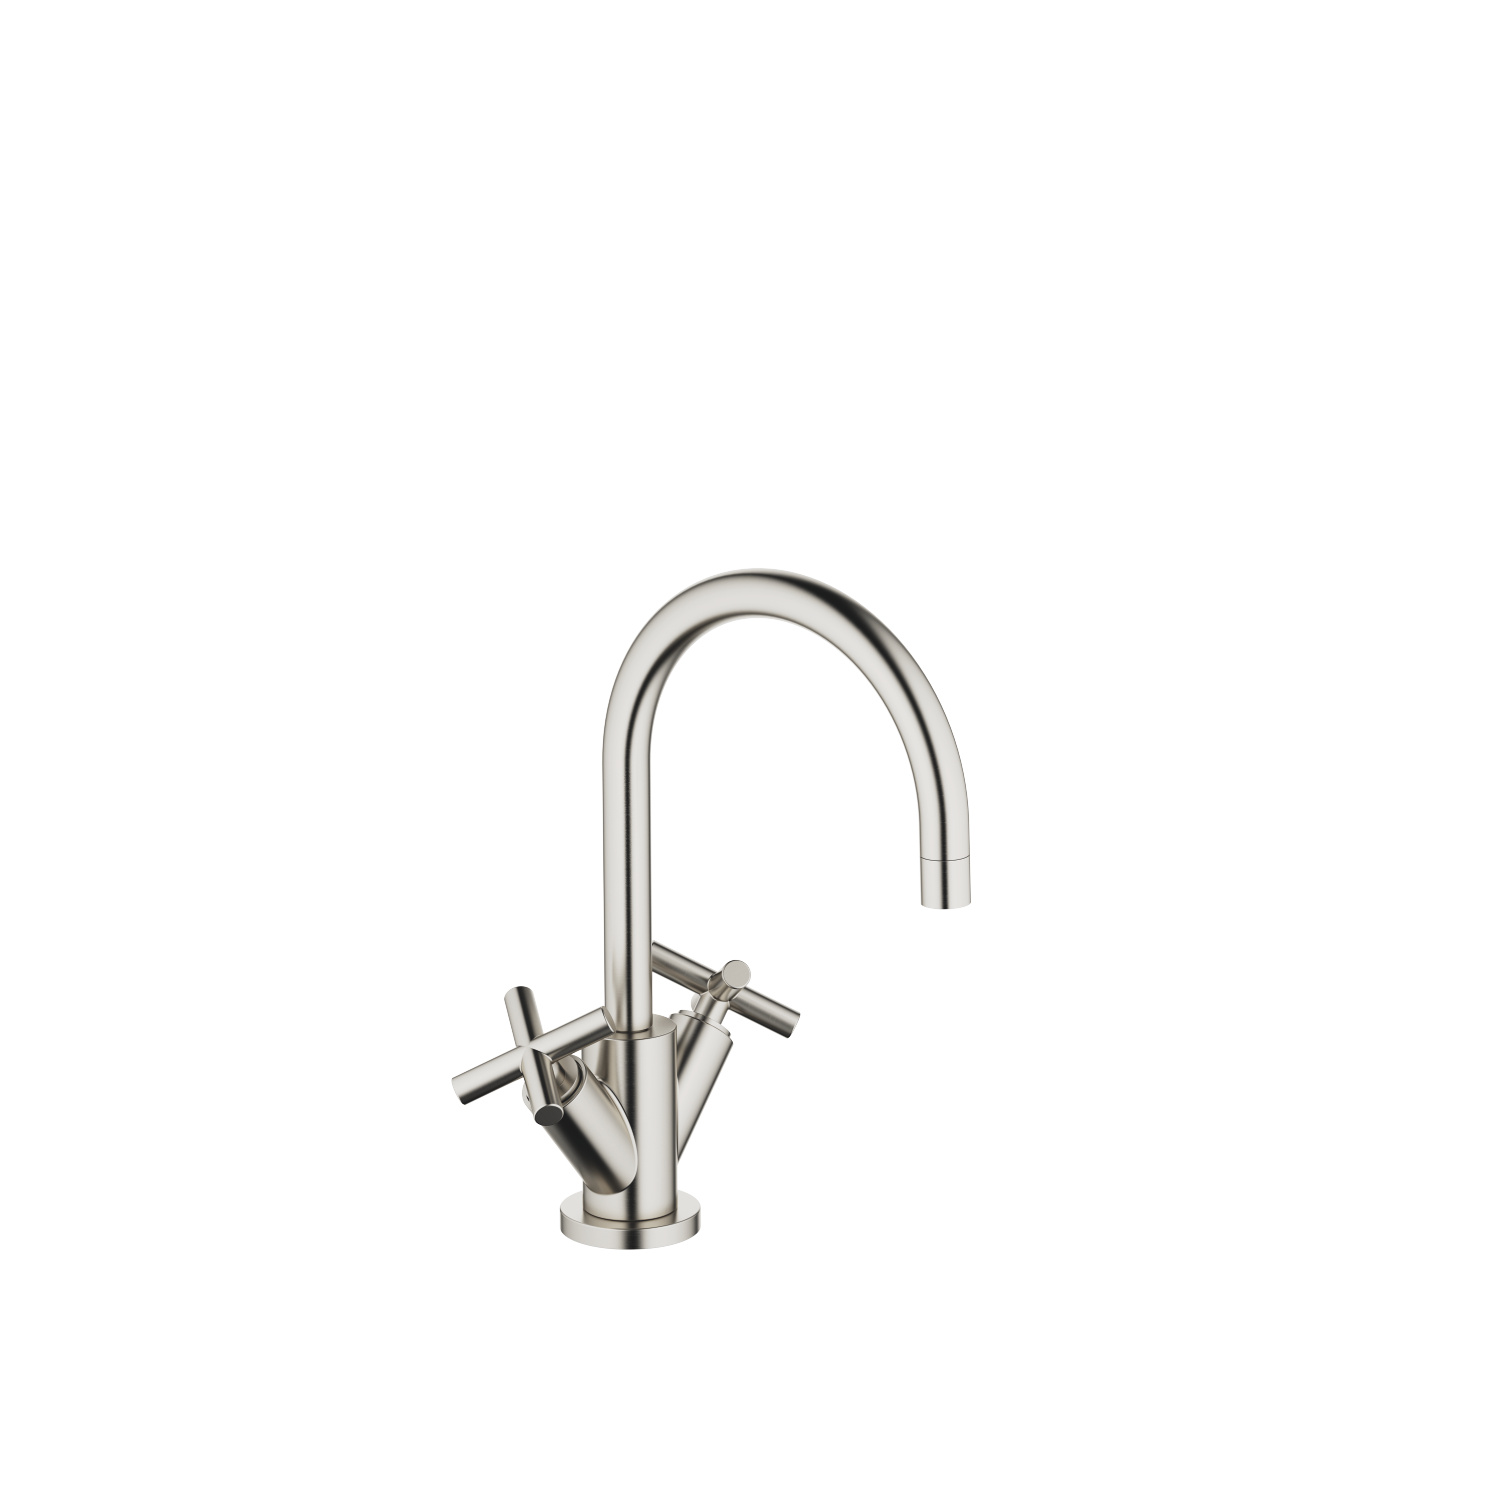 Single-hole basin mixer with pop-up waste - platinum matt - 22 513 892-06